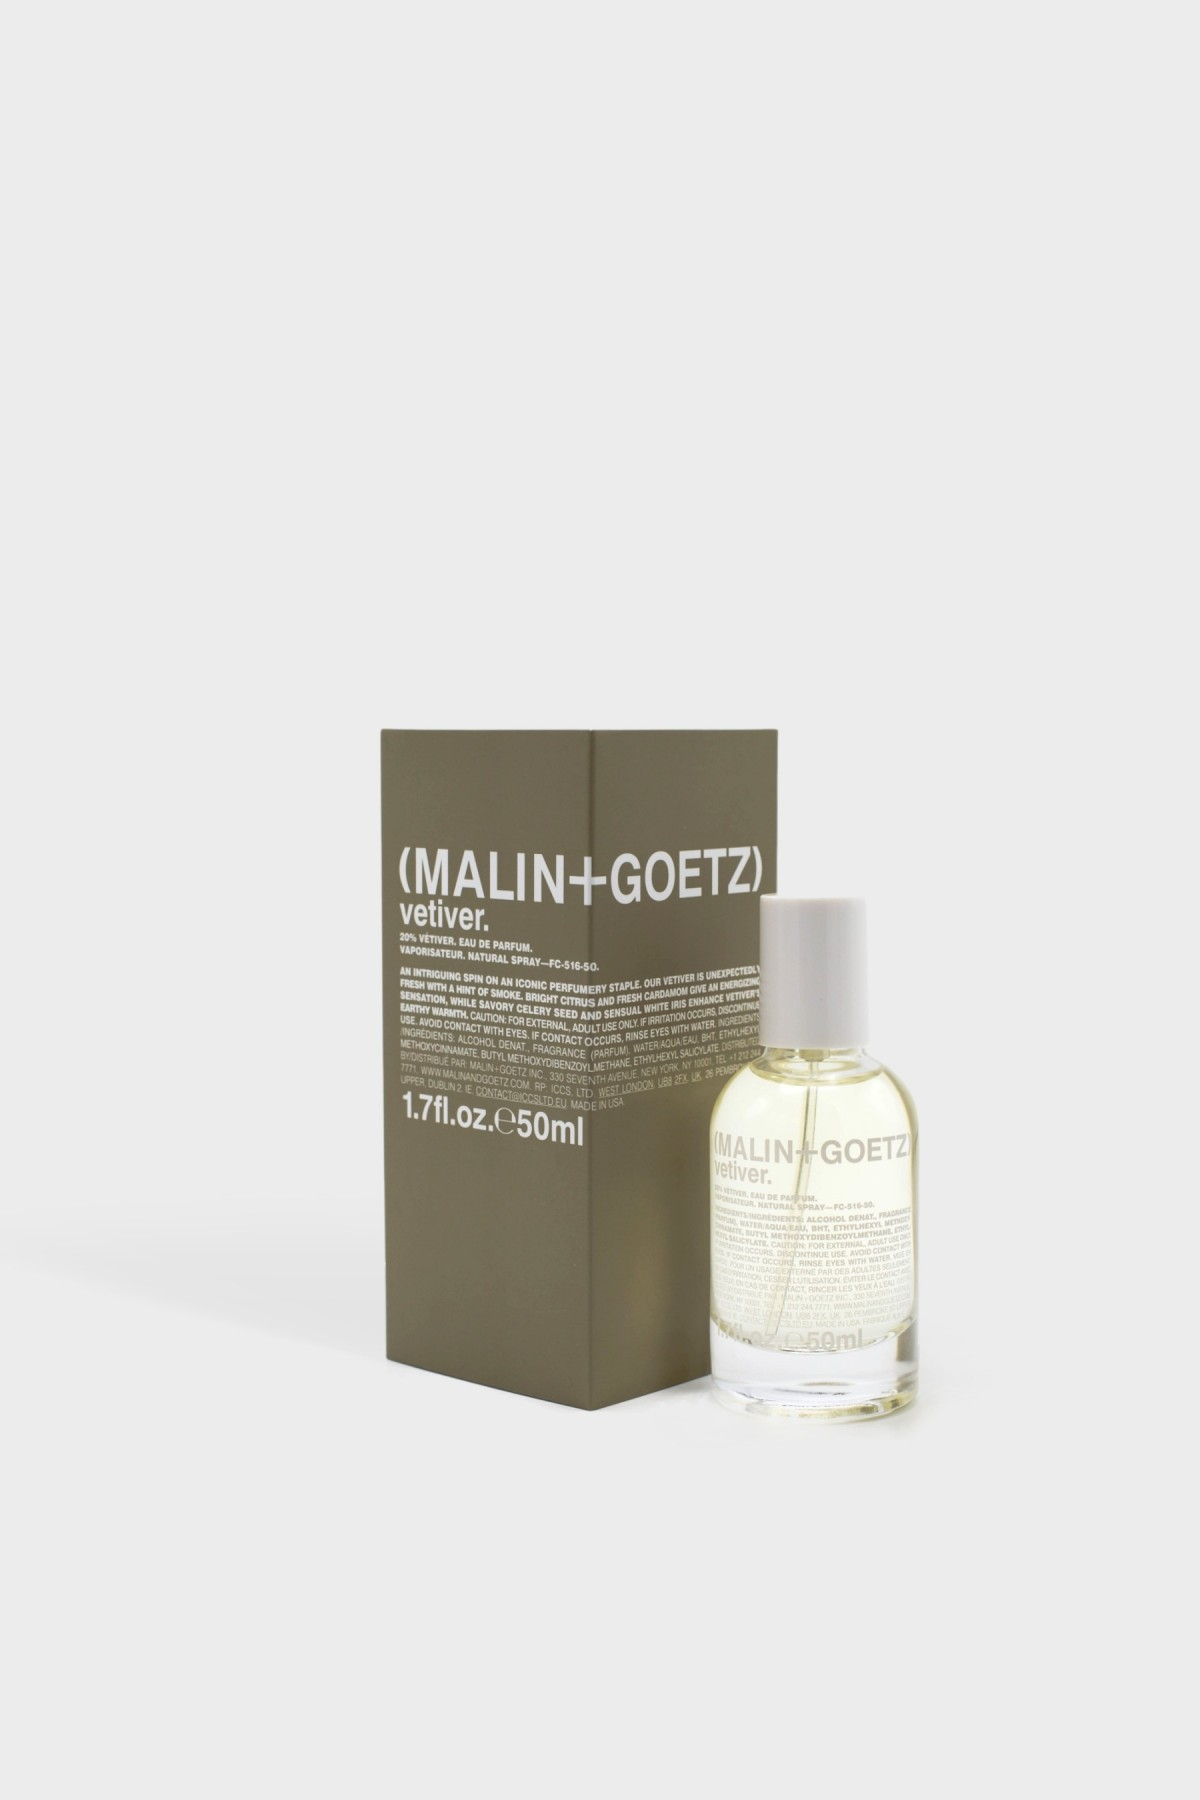 Malin+Goetz Vetiver Eau de Parfum 50ml in